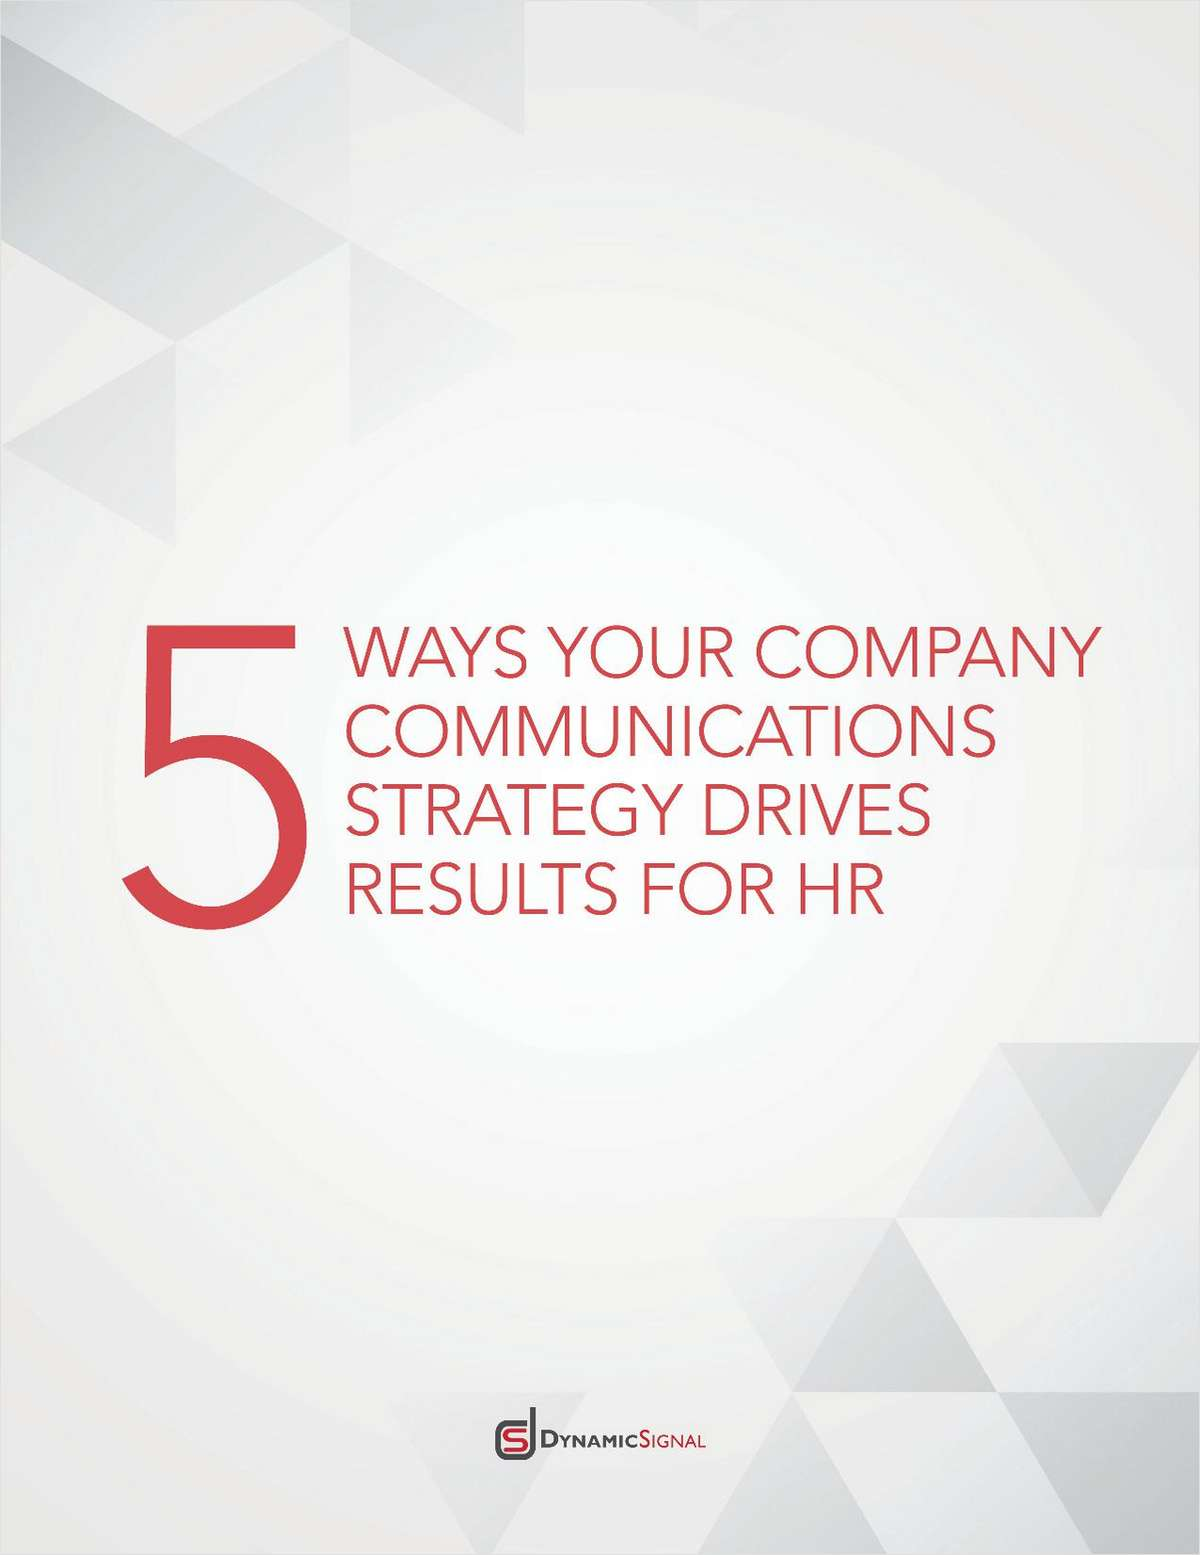 5 Ways Your Company Communications Strategy Drives Results For HR